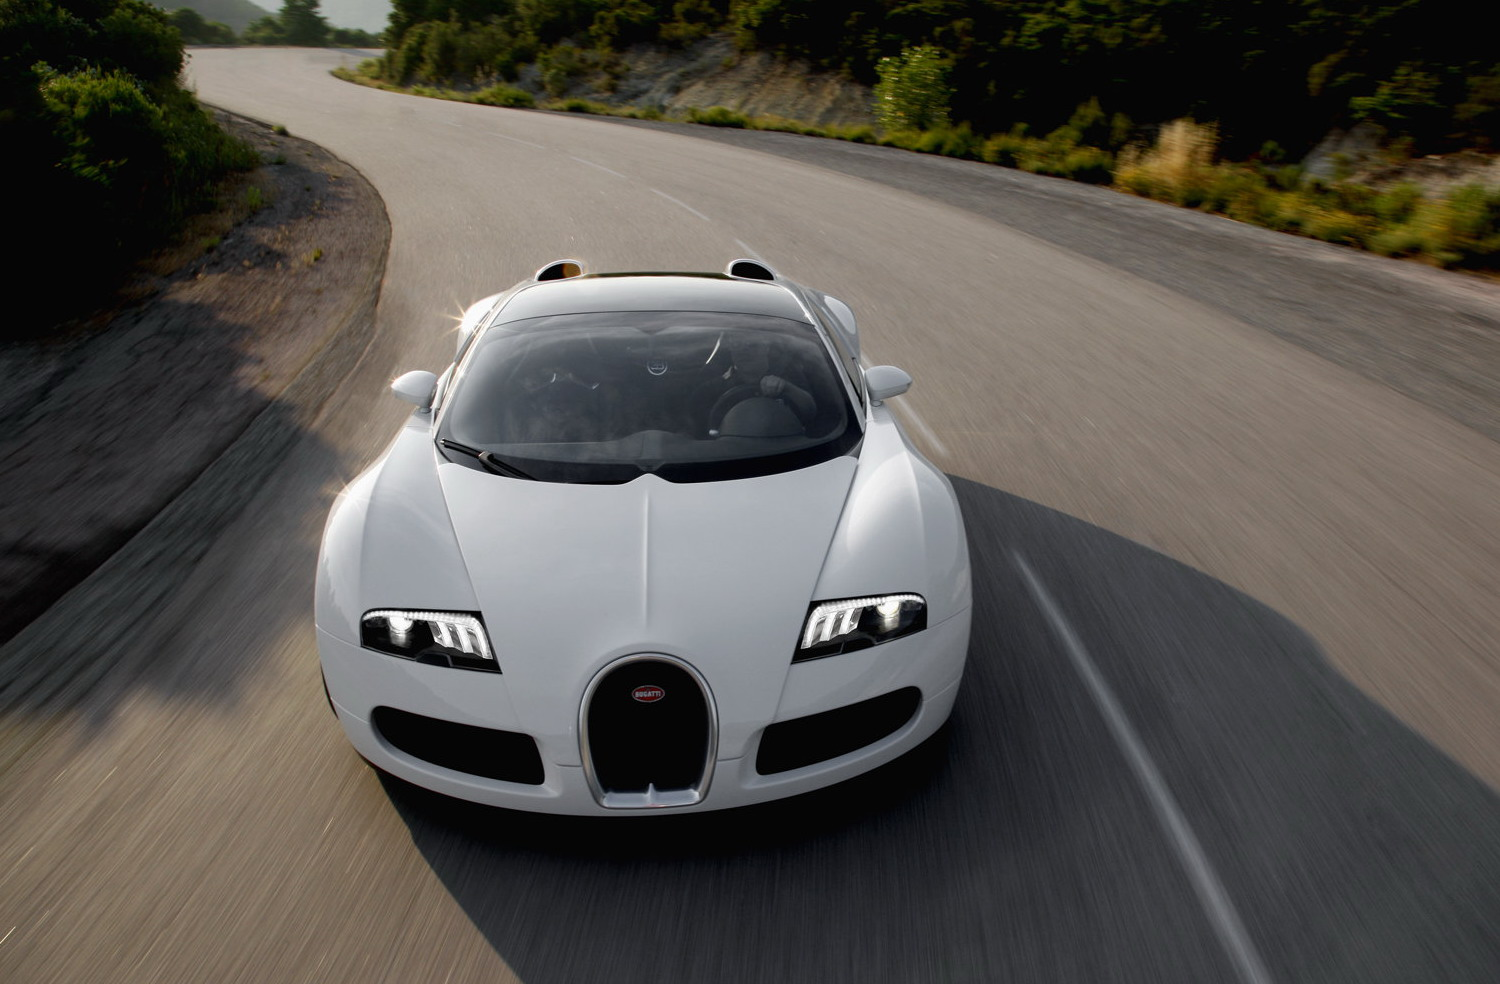 bugatti veyron 16 4 grand sport debut at pebble beach details and photo i. Black Bedroom Furniture Sets. Home Design Ideas